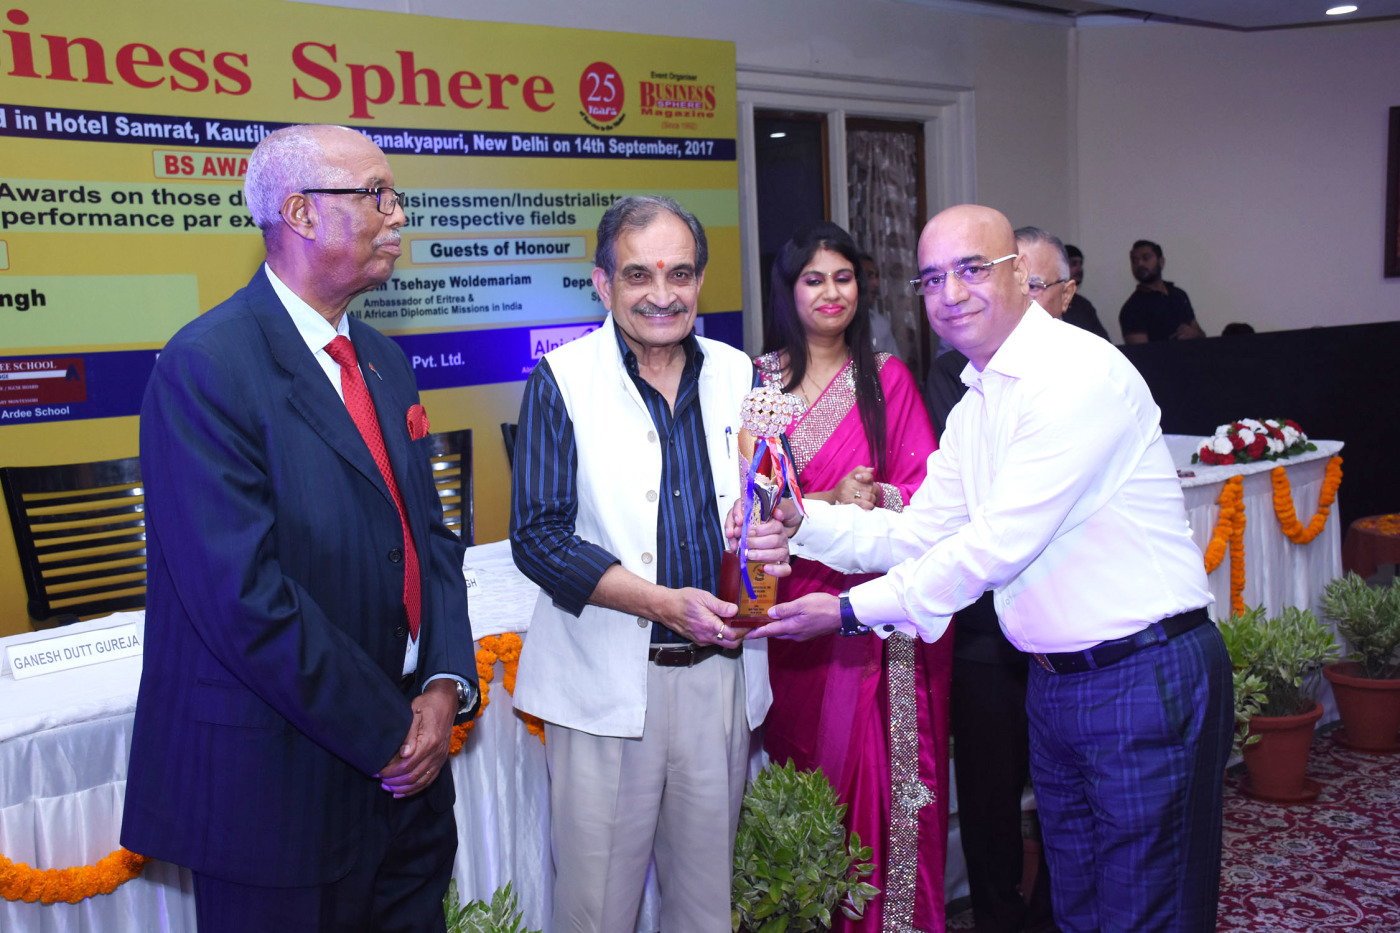 Business Sphere Award for Most trusted Company